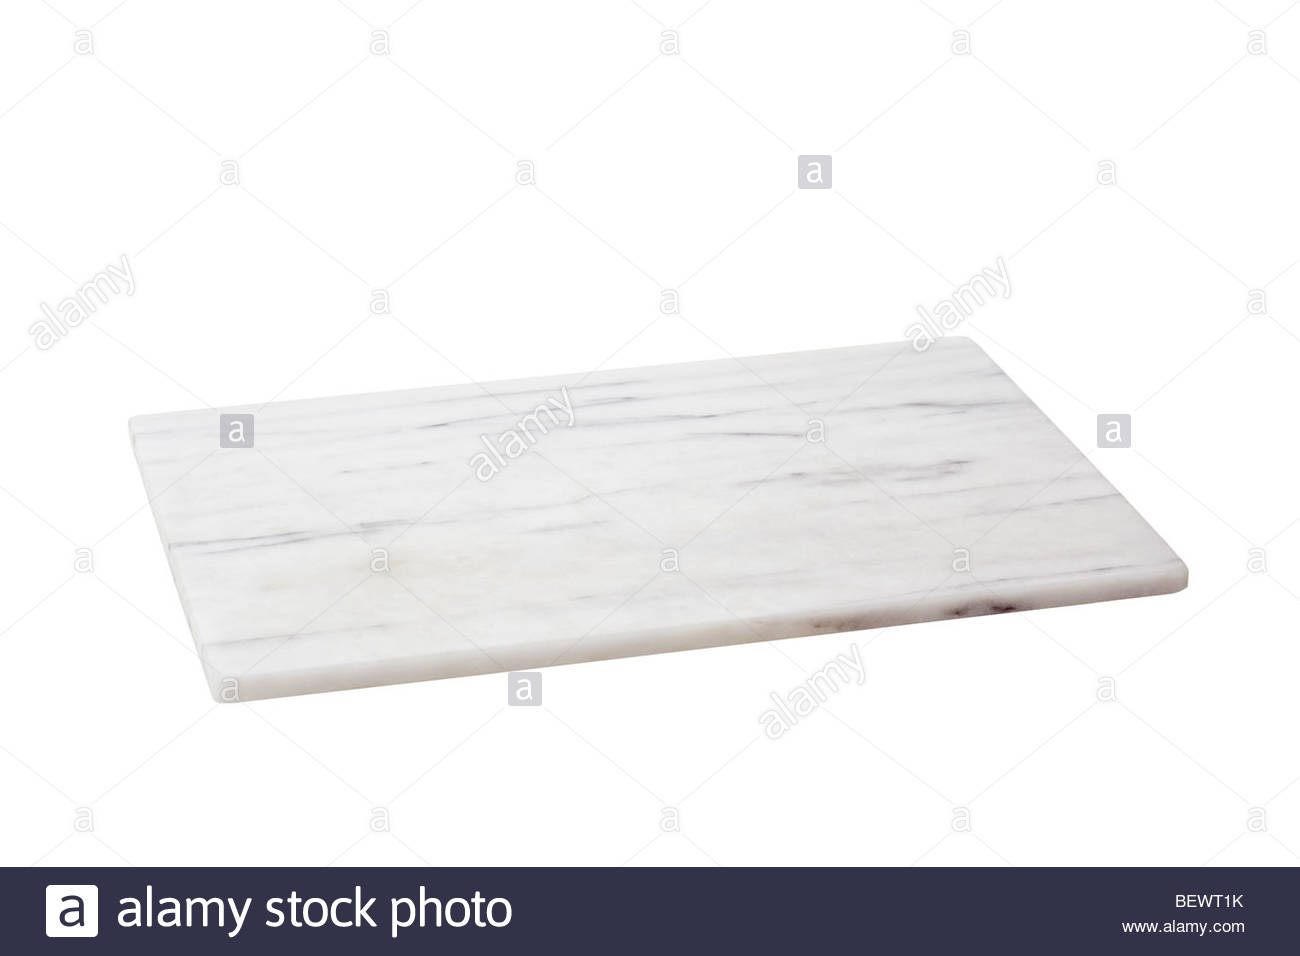 cutting board stockfotos cutting board bilder alamy. Black Bedroom Furniture Sets. Home Design Ideas